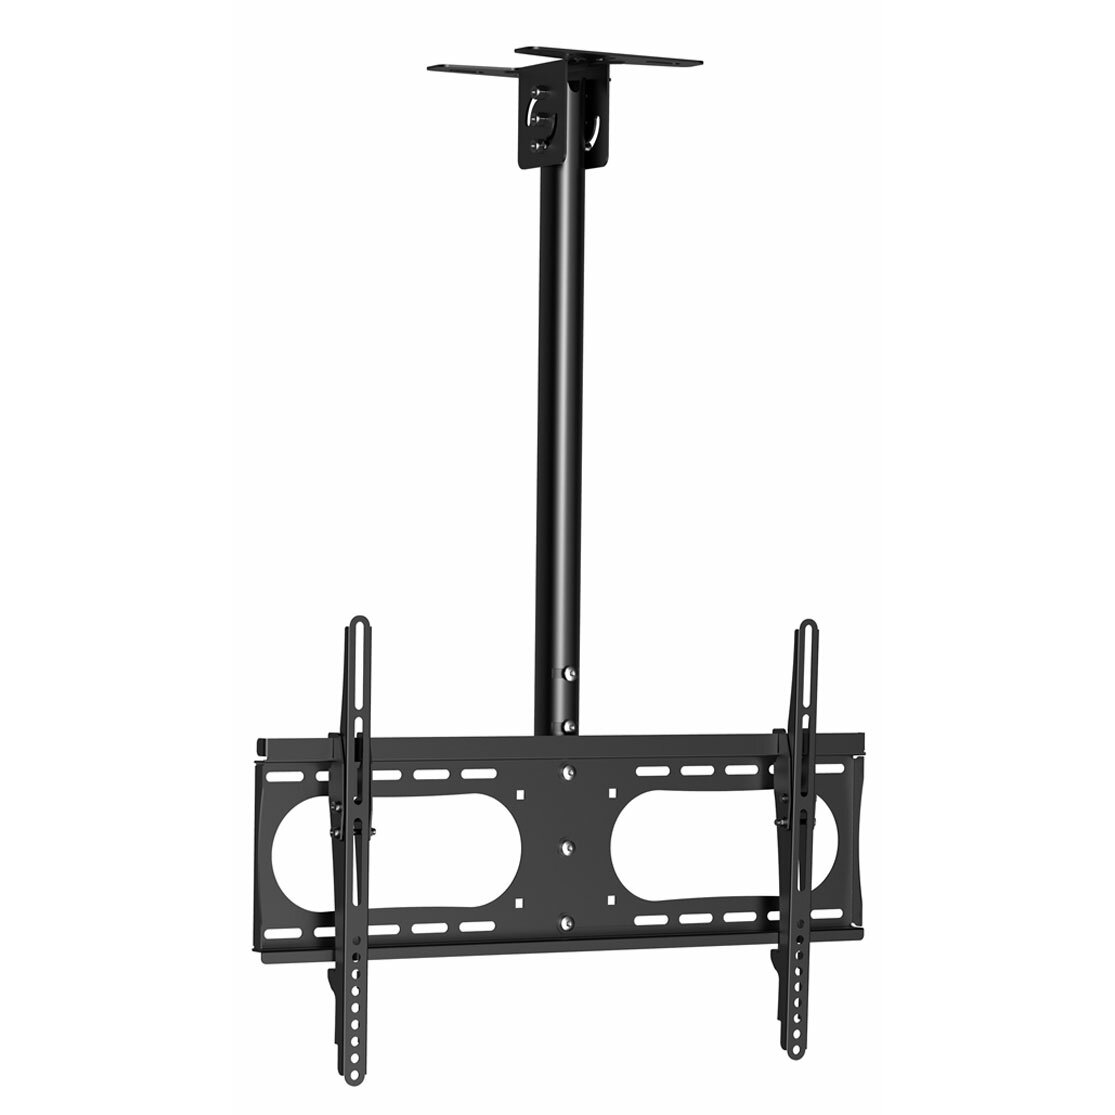 arrowmounts adjustable pole angle tilt ceiling mount for. Black Bedroom Furniture Sets. Home Design Ideas